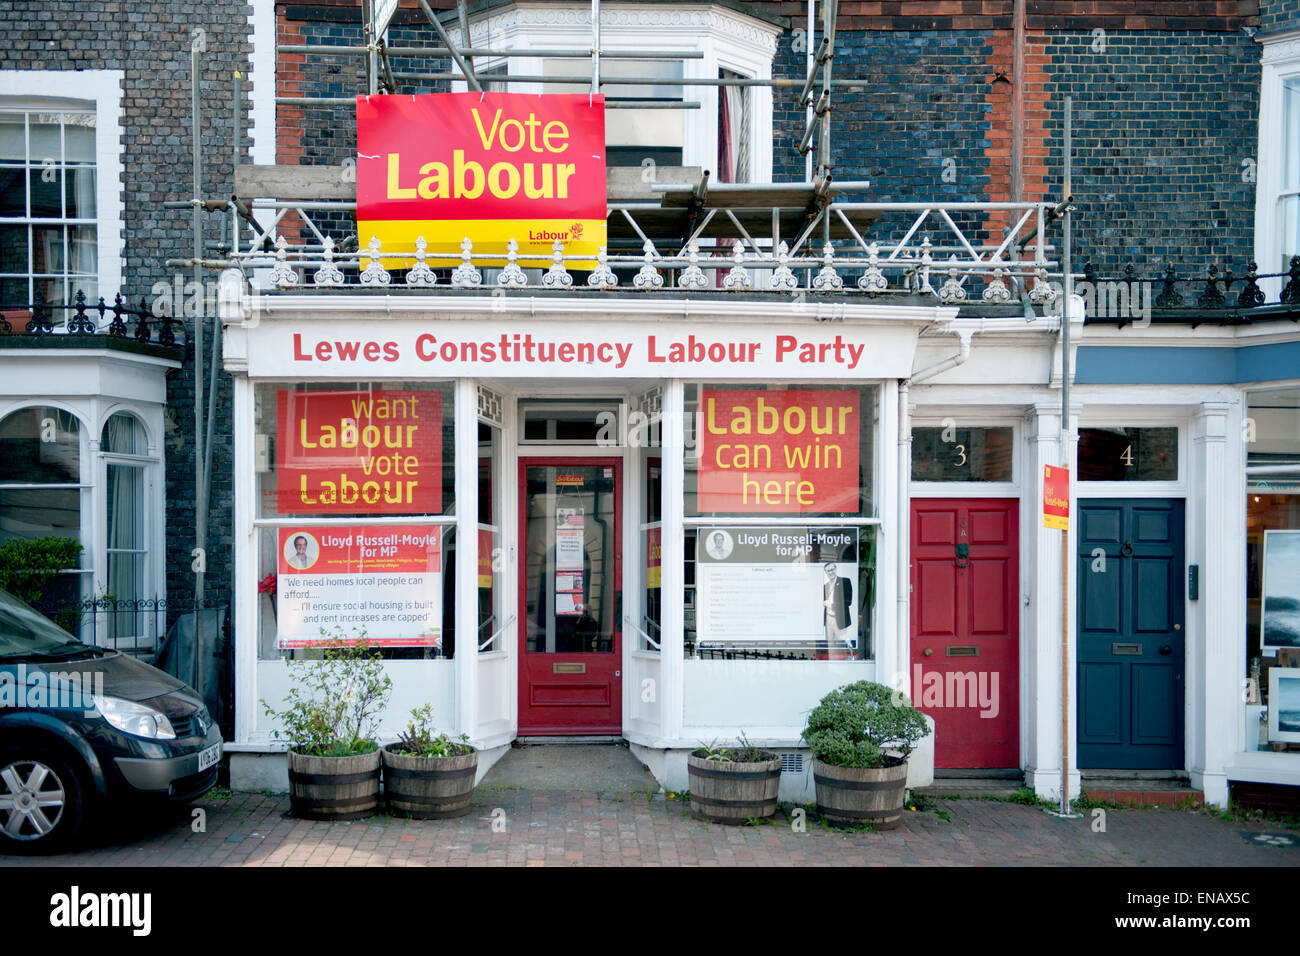 Constituency Labour Party offices in Lewes, UK - Stock Image